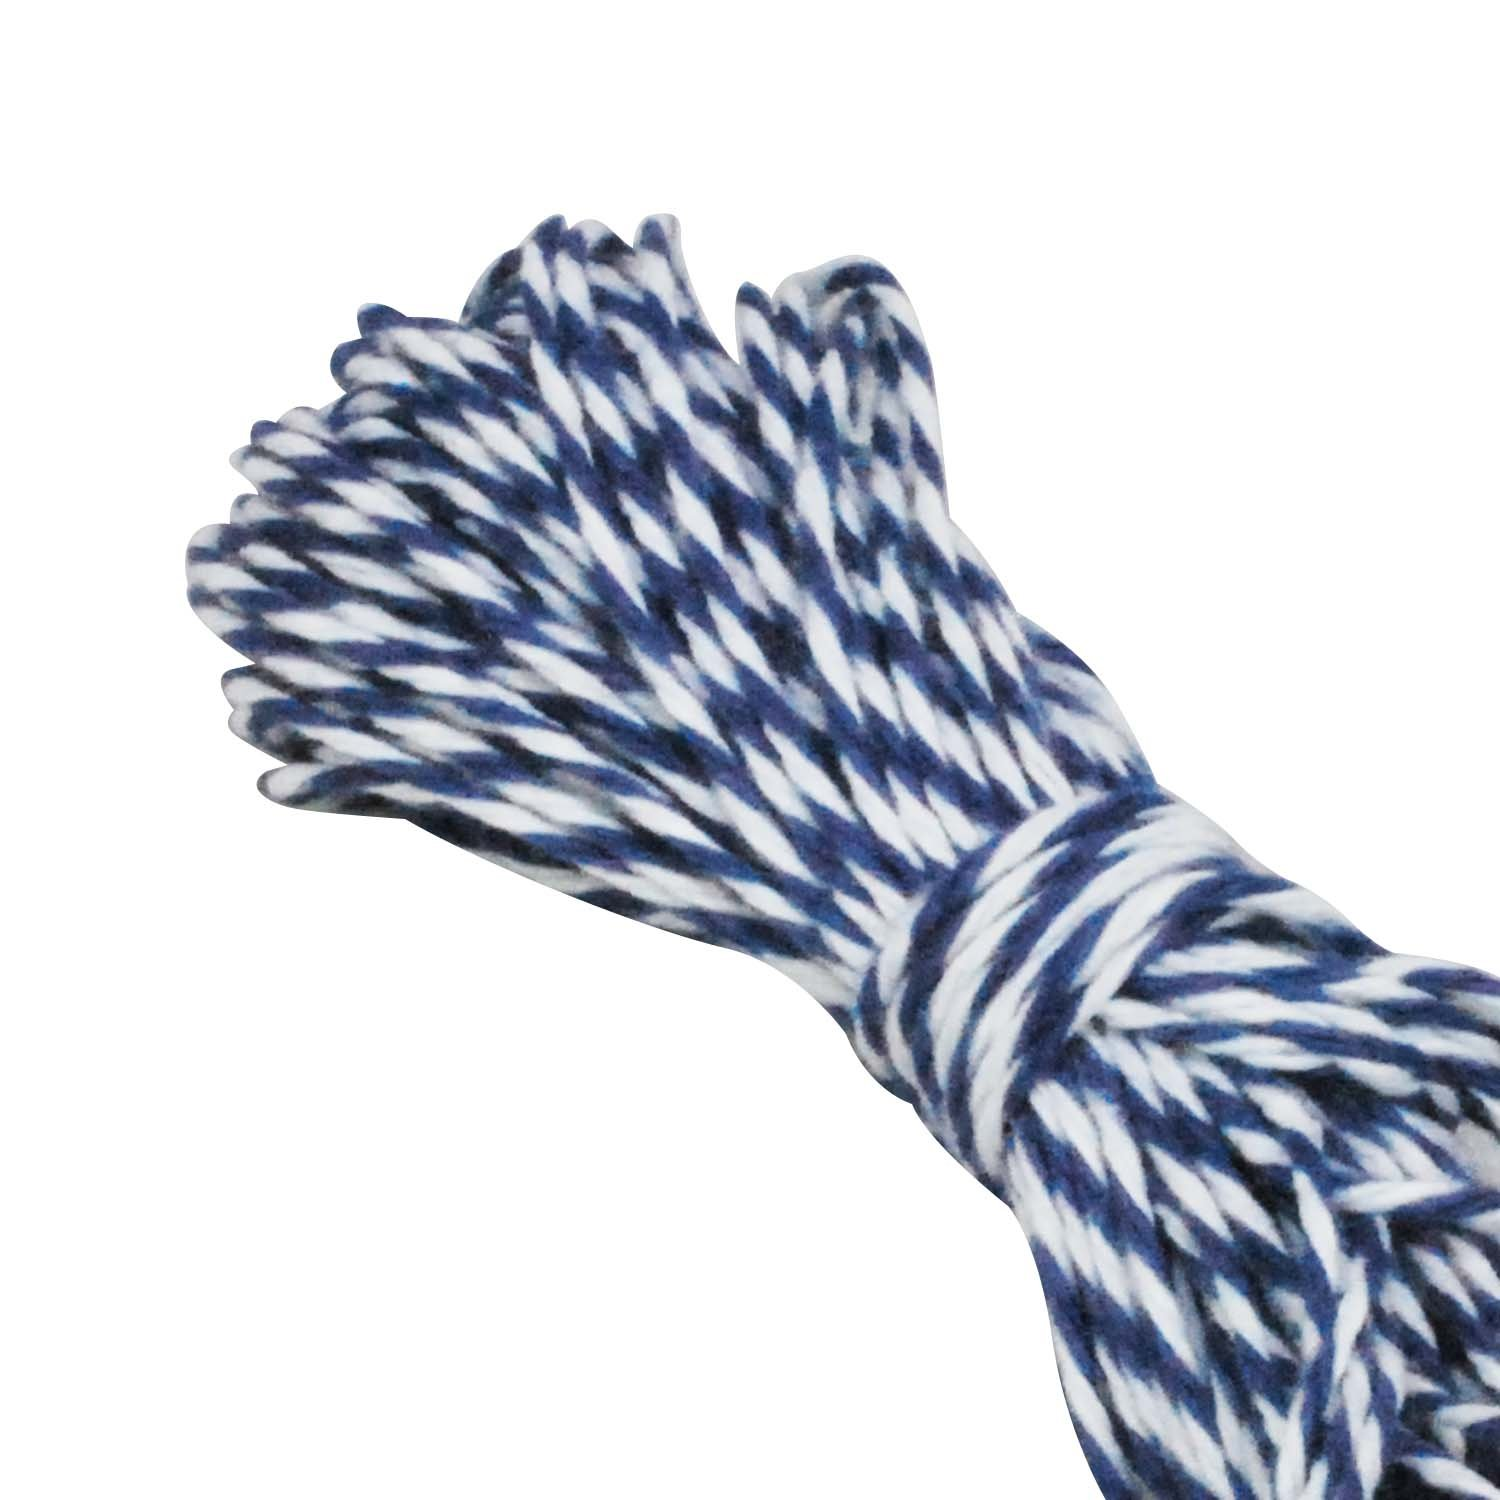 Dress My Cupcake Baker's Twine String Roll for Gifts and Favors, 15-Yard, Navy Blue